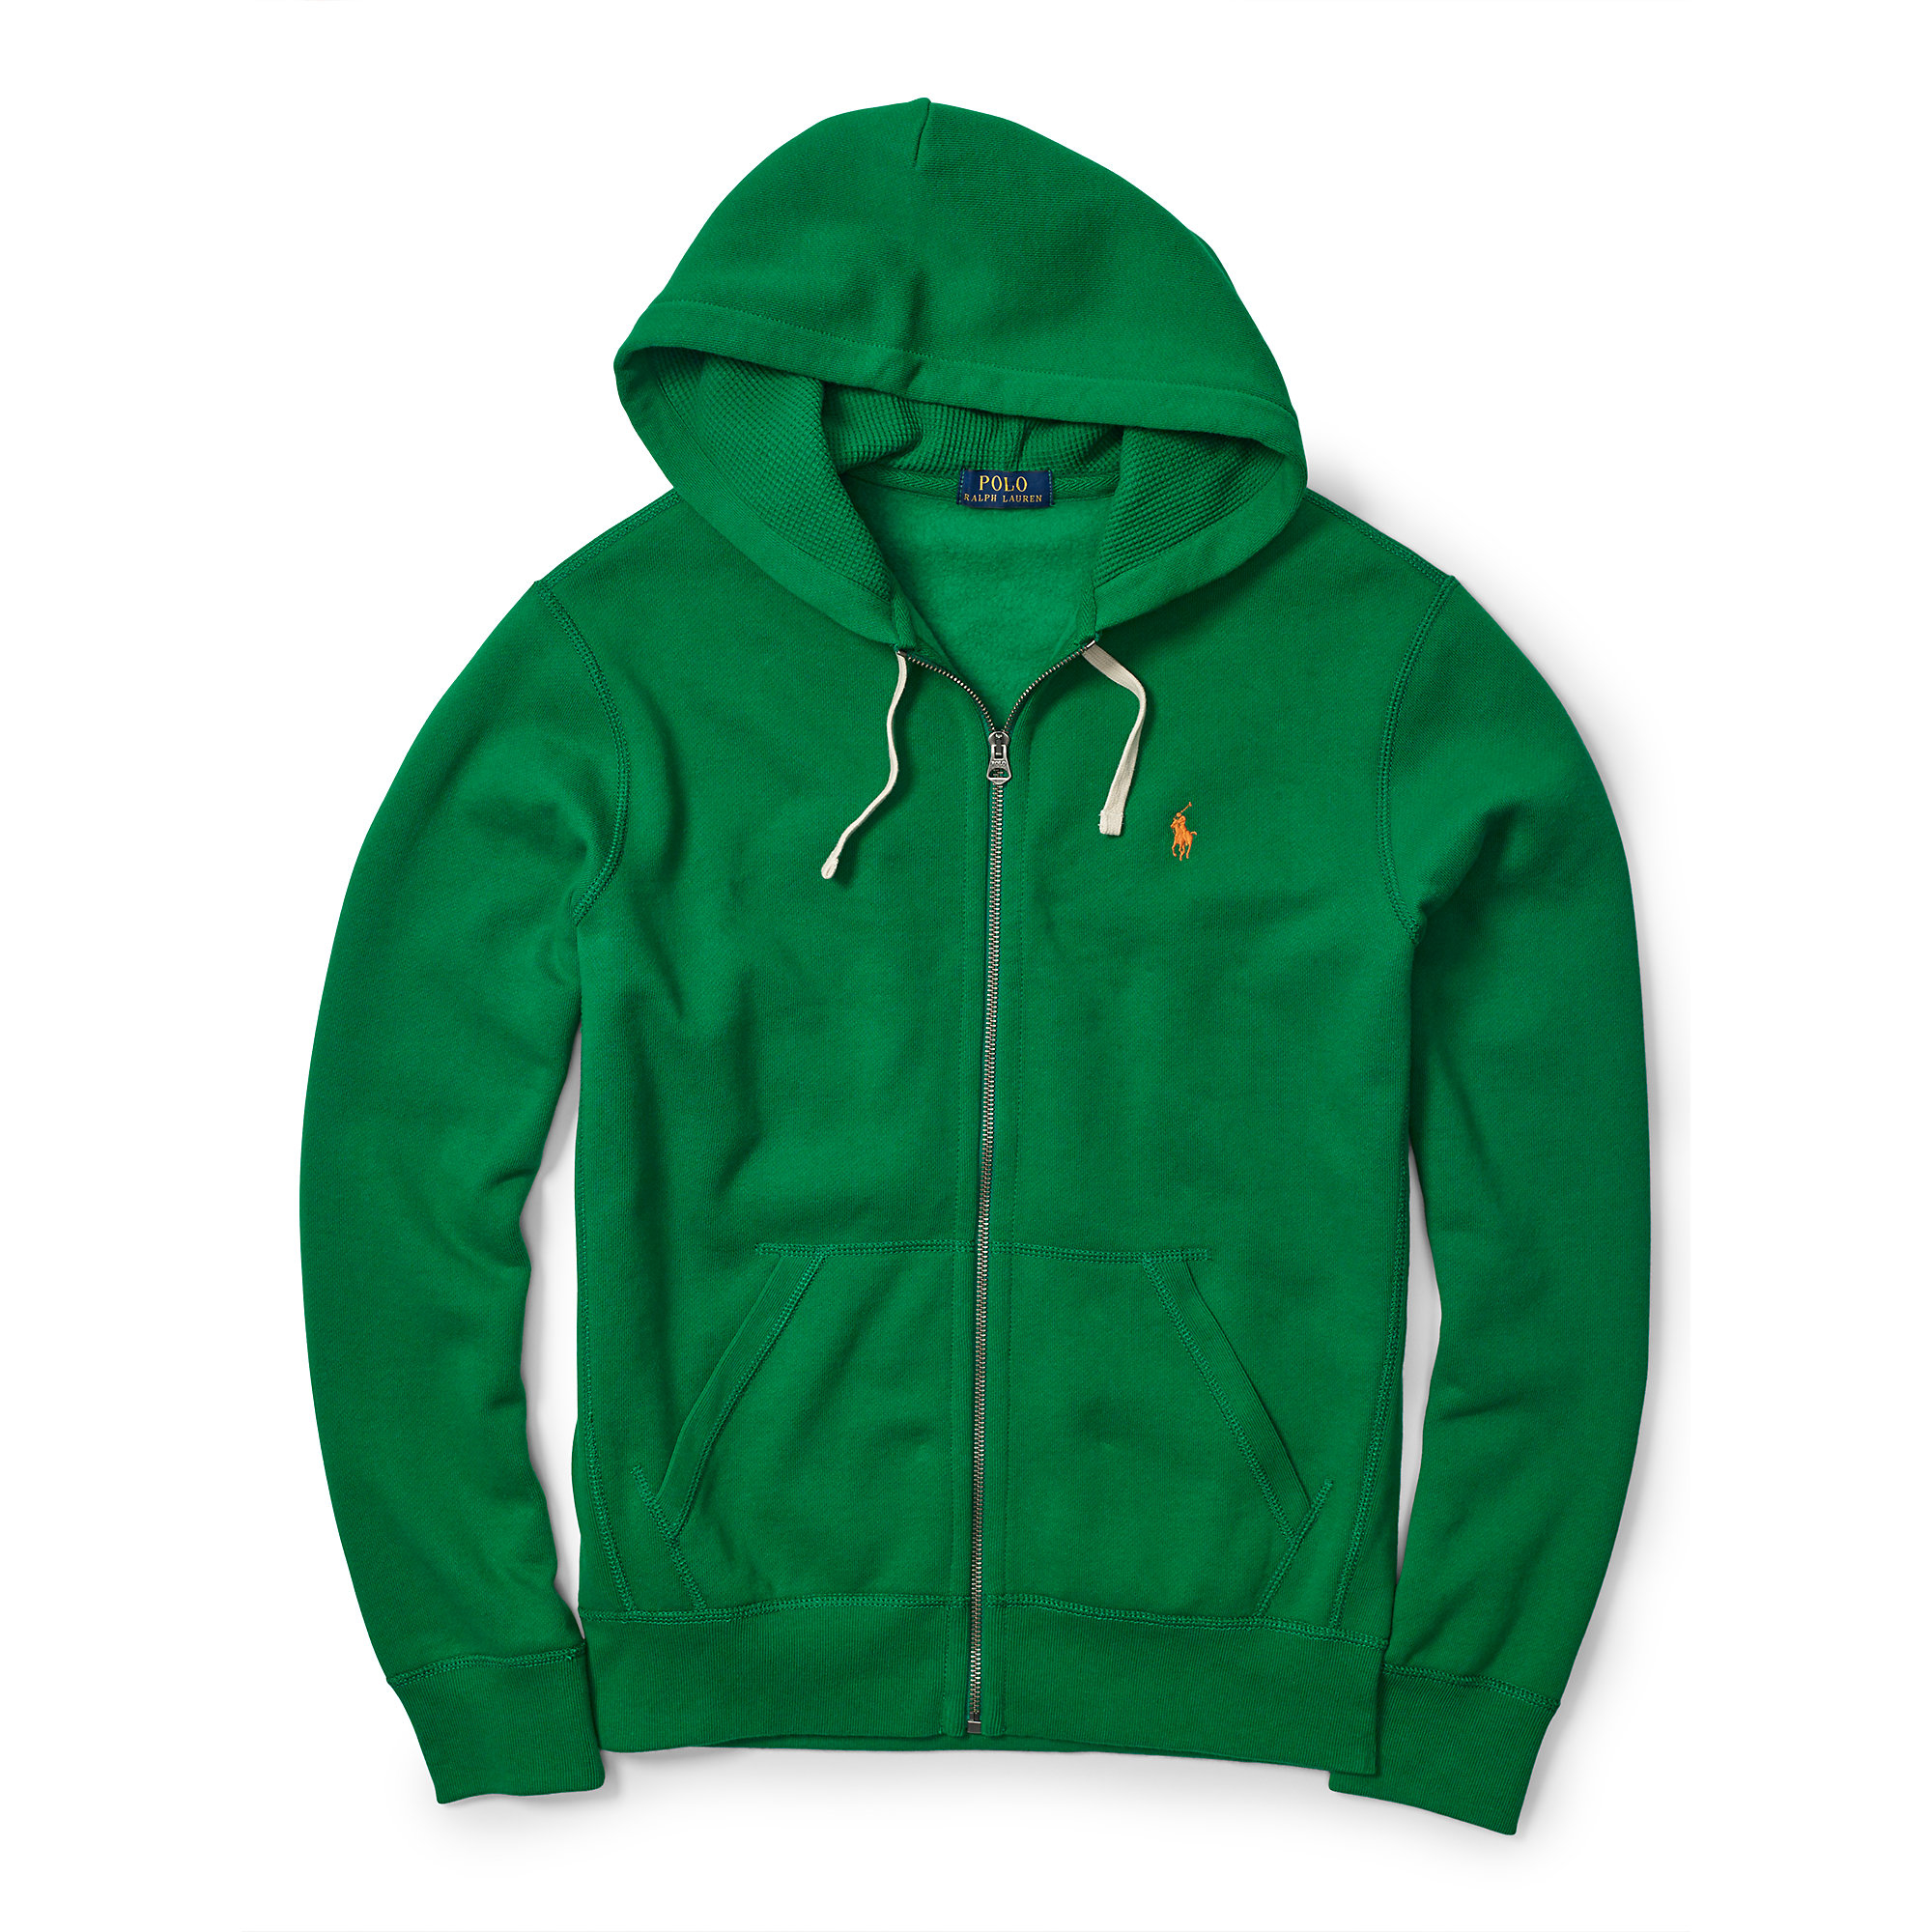 ralph lauren polo green zip hooded sweatshirt. Black Bedroom Furniture Sets. Home Design Ideas